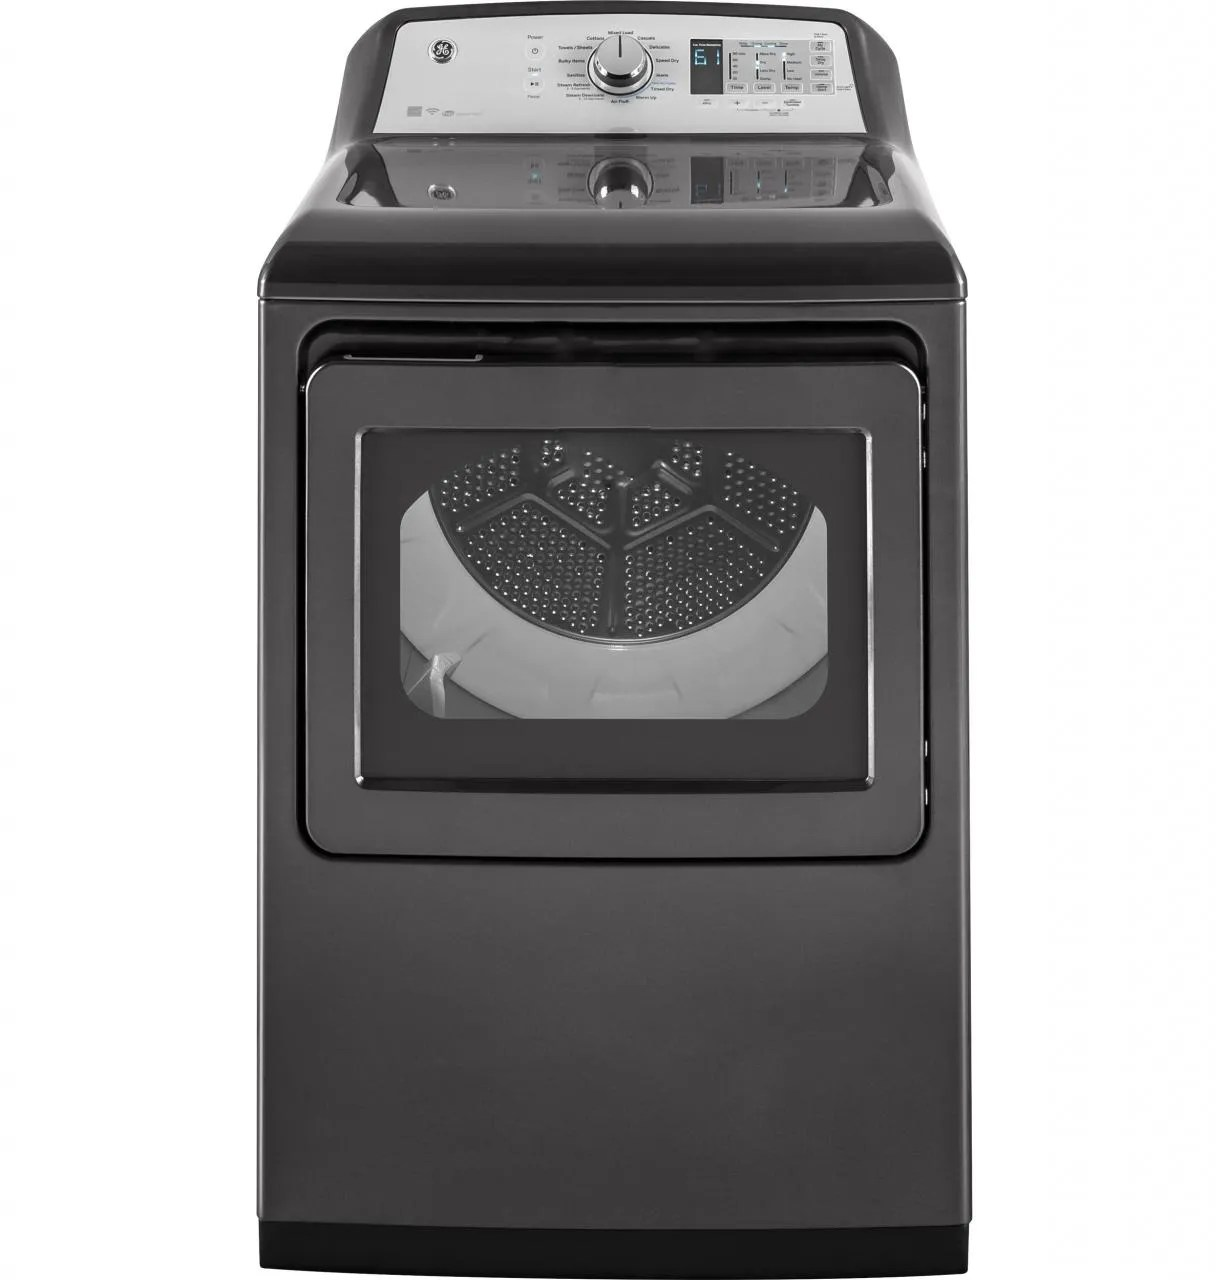 hight resolution of ge front load electric dryer diamond gray gtd75ecpldg